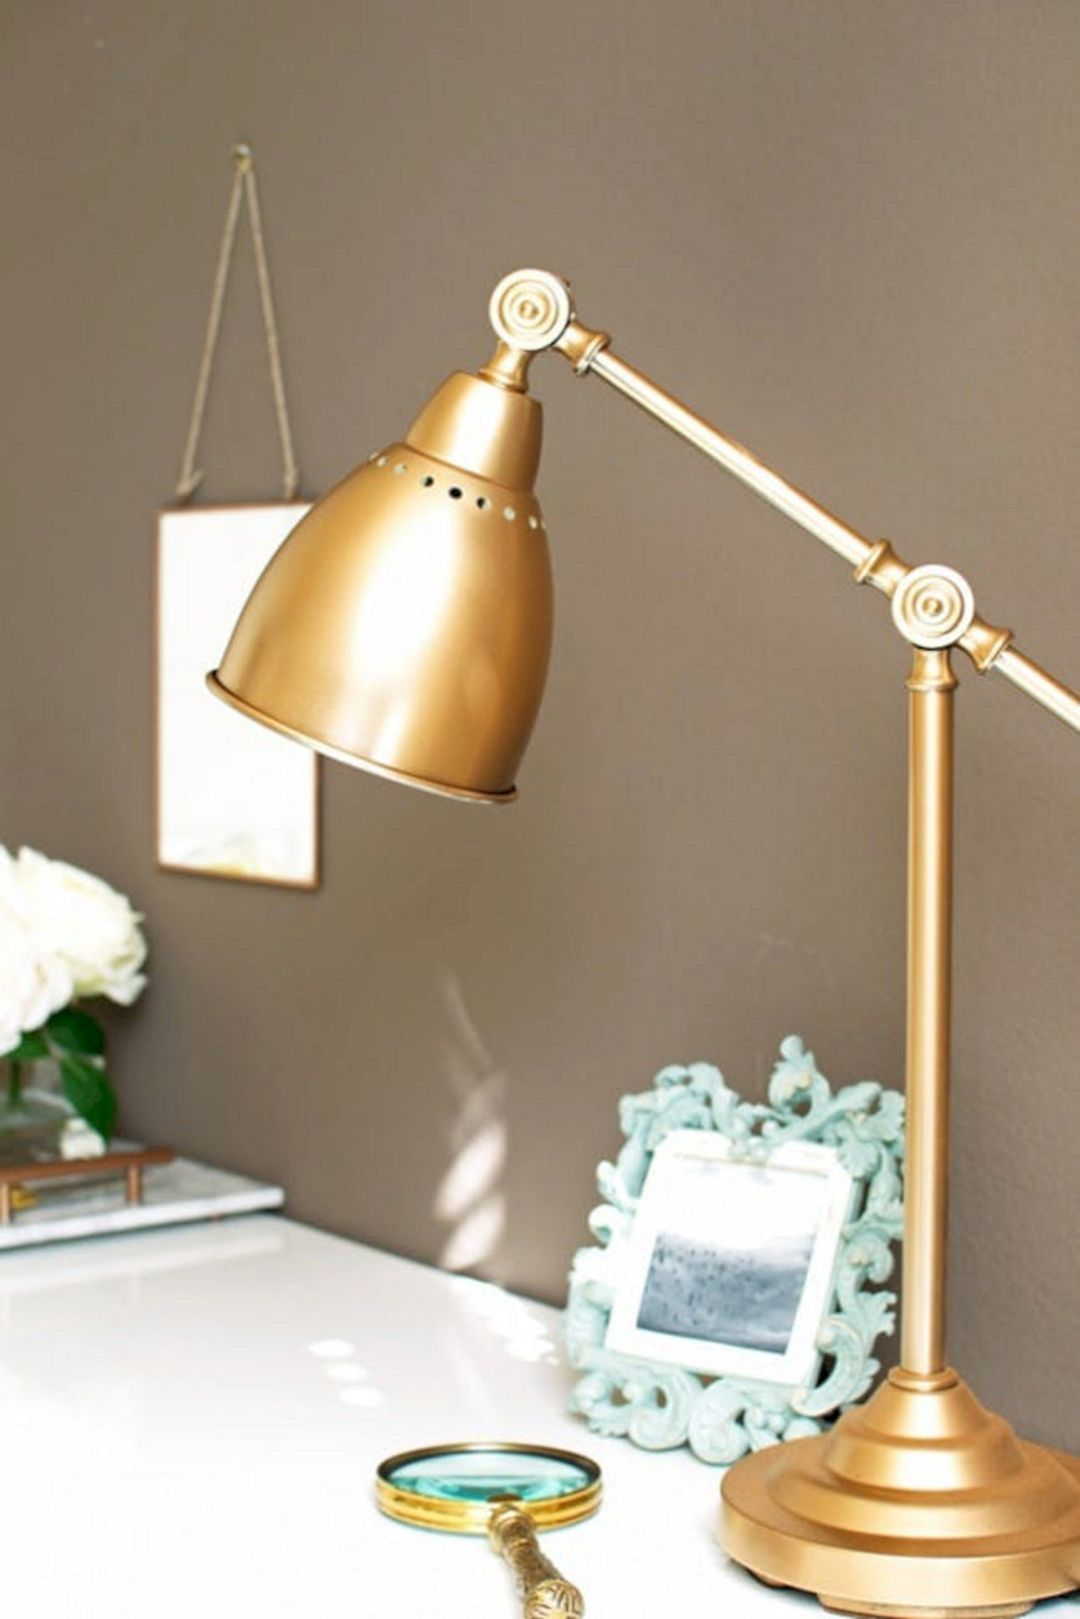 Ikea Lampe Gold Ikea Spray Paint Hack 24 | Gold Spray Paint, Spray Paint ...